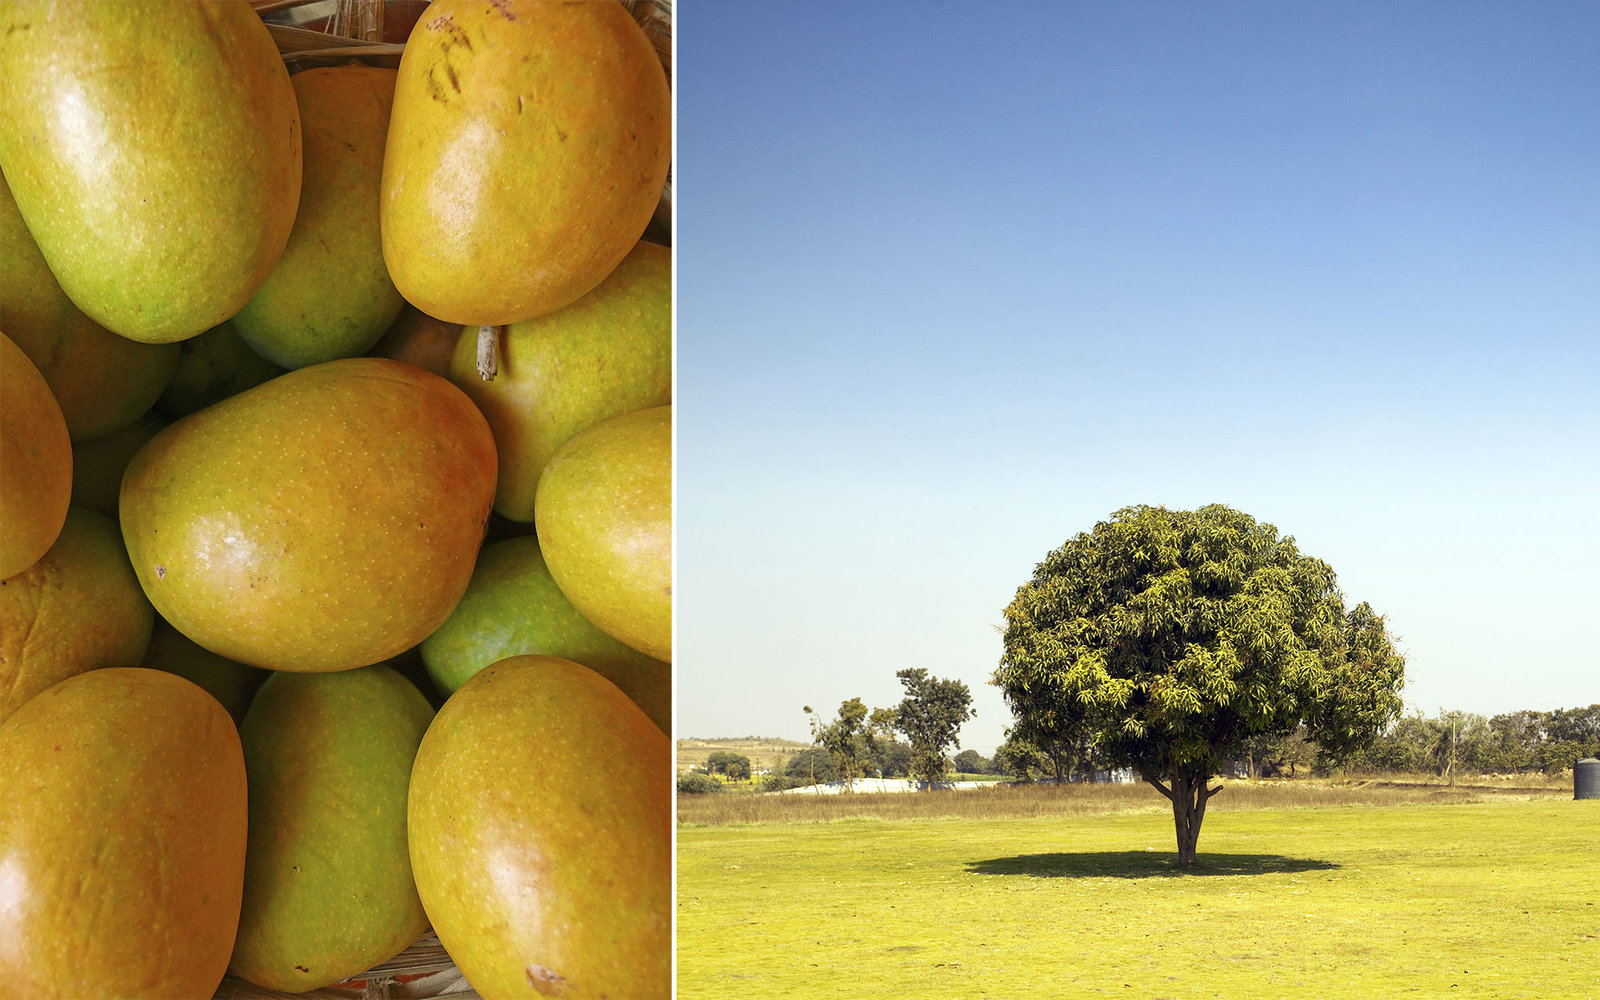 The Life and Times of an Indian Mango